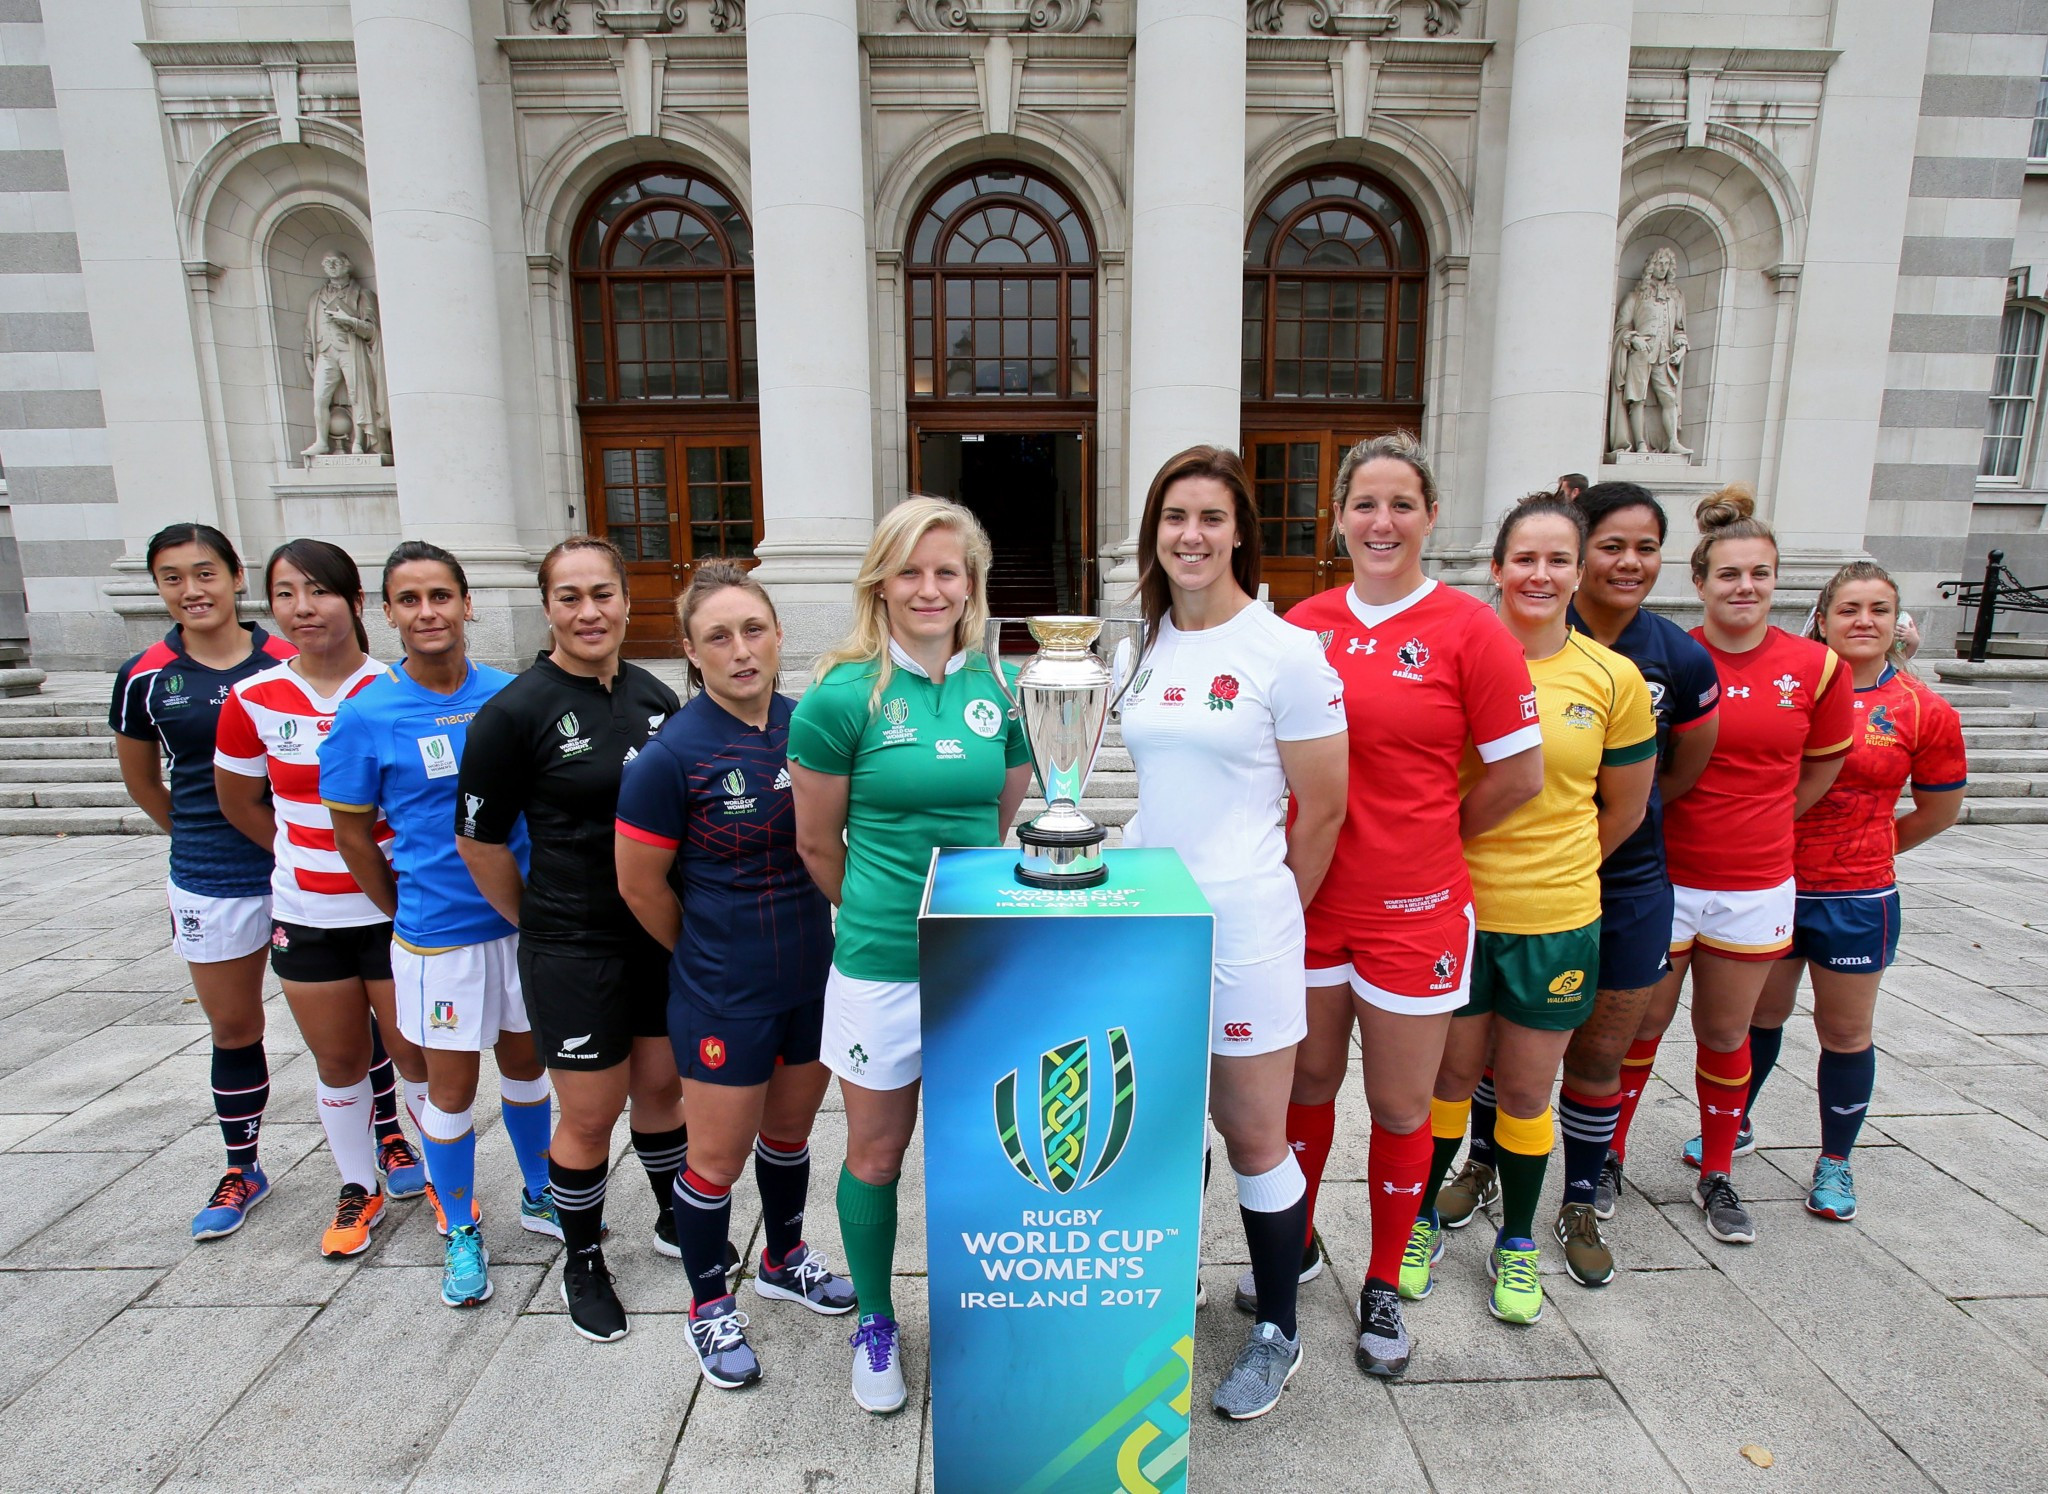 Leadership forum being held in Belfast to coincide with Women's Rugby World Cup